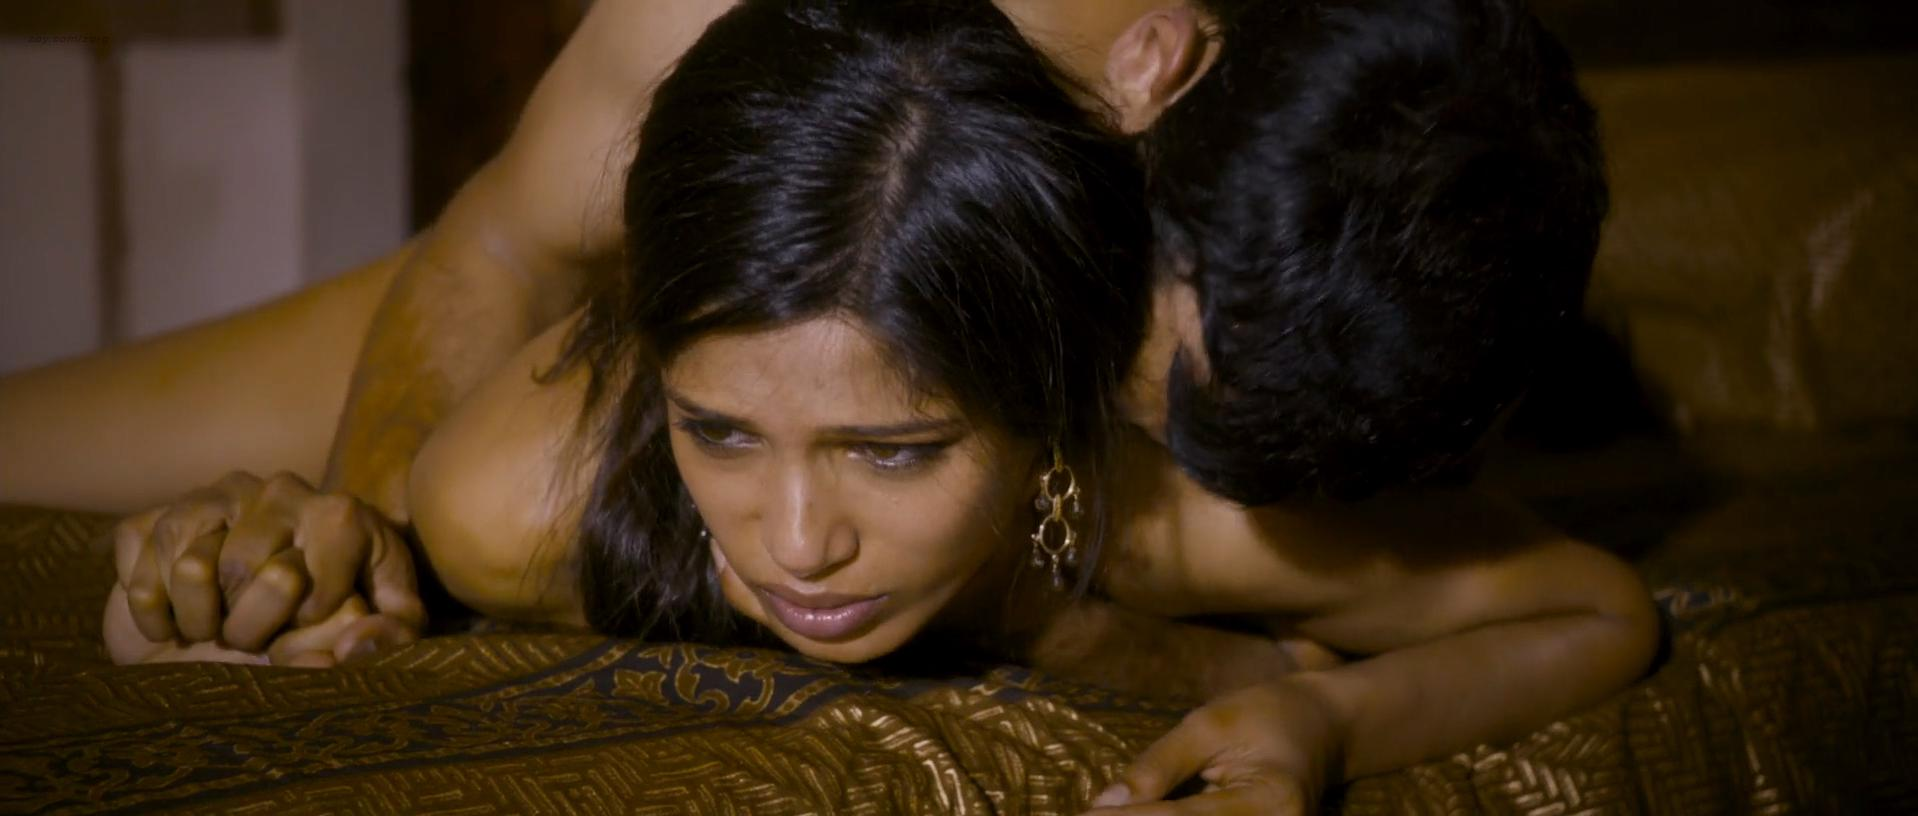 Freida pinto nude sex — photo 9